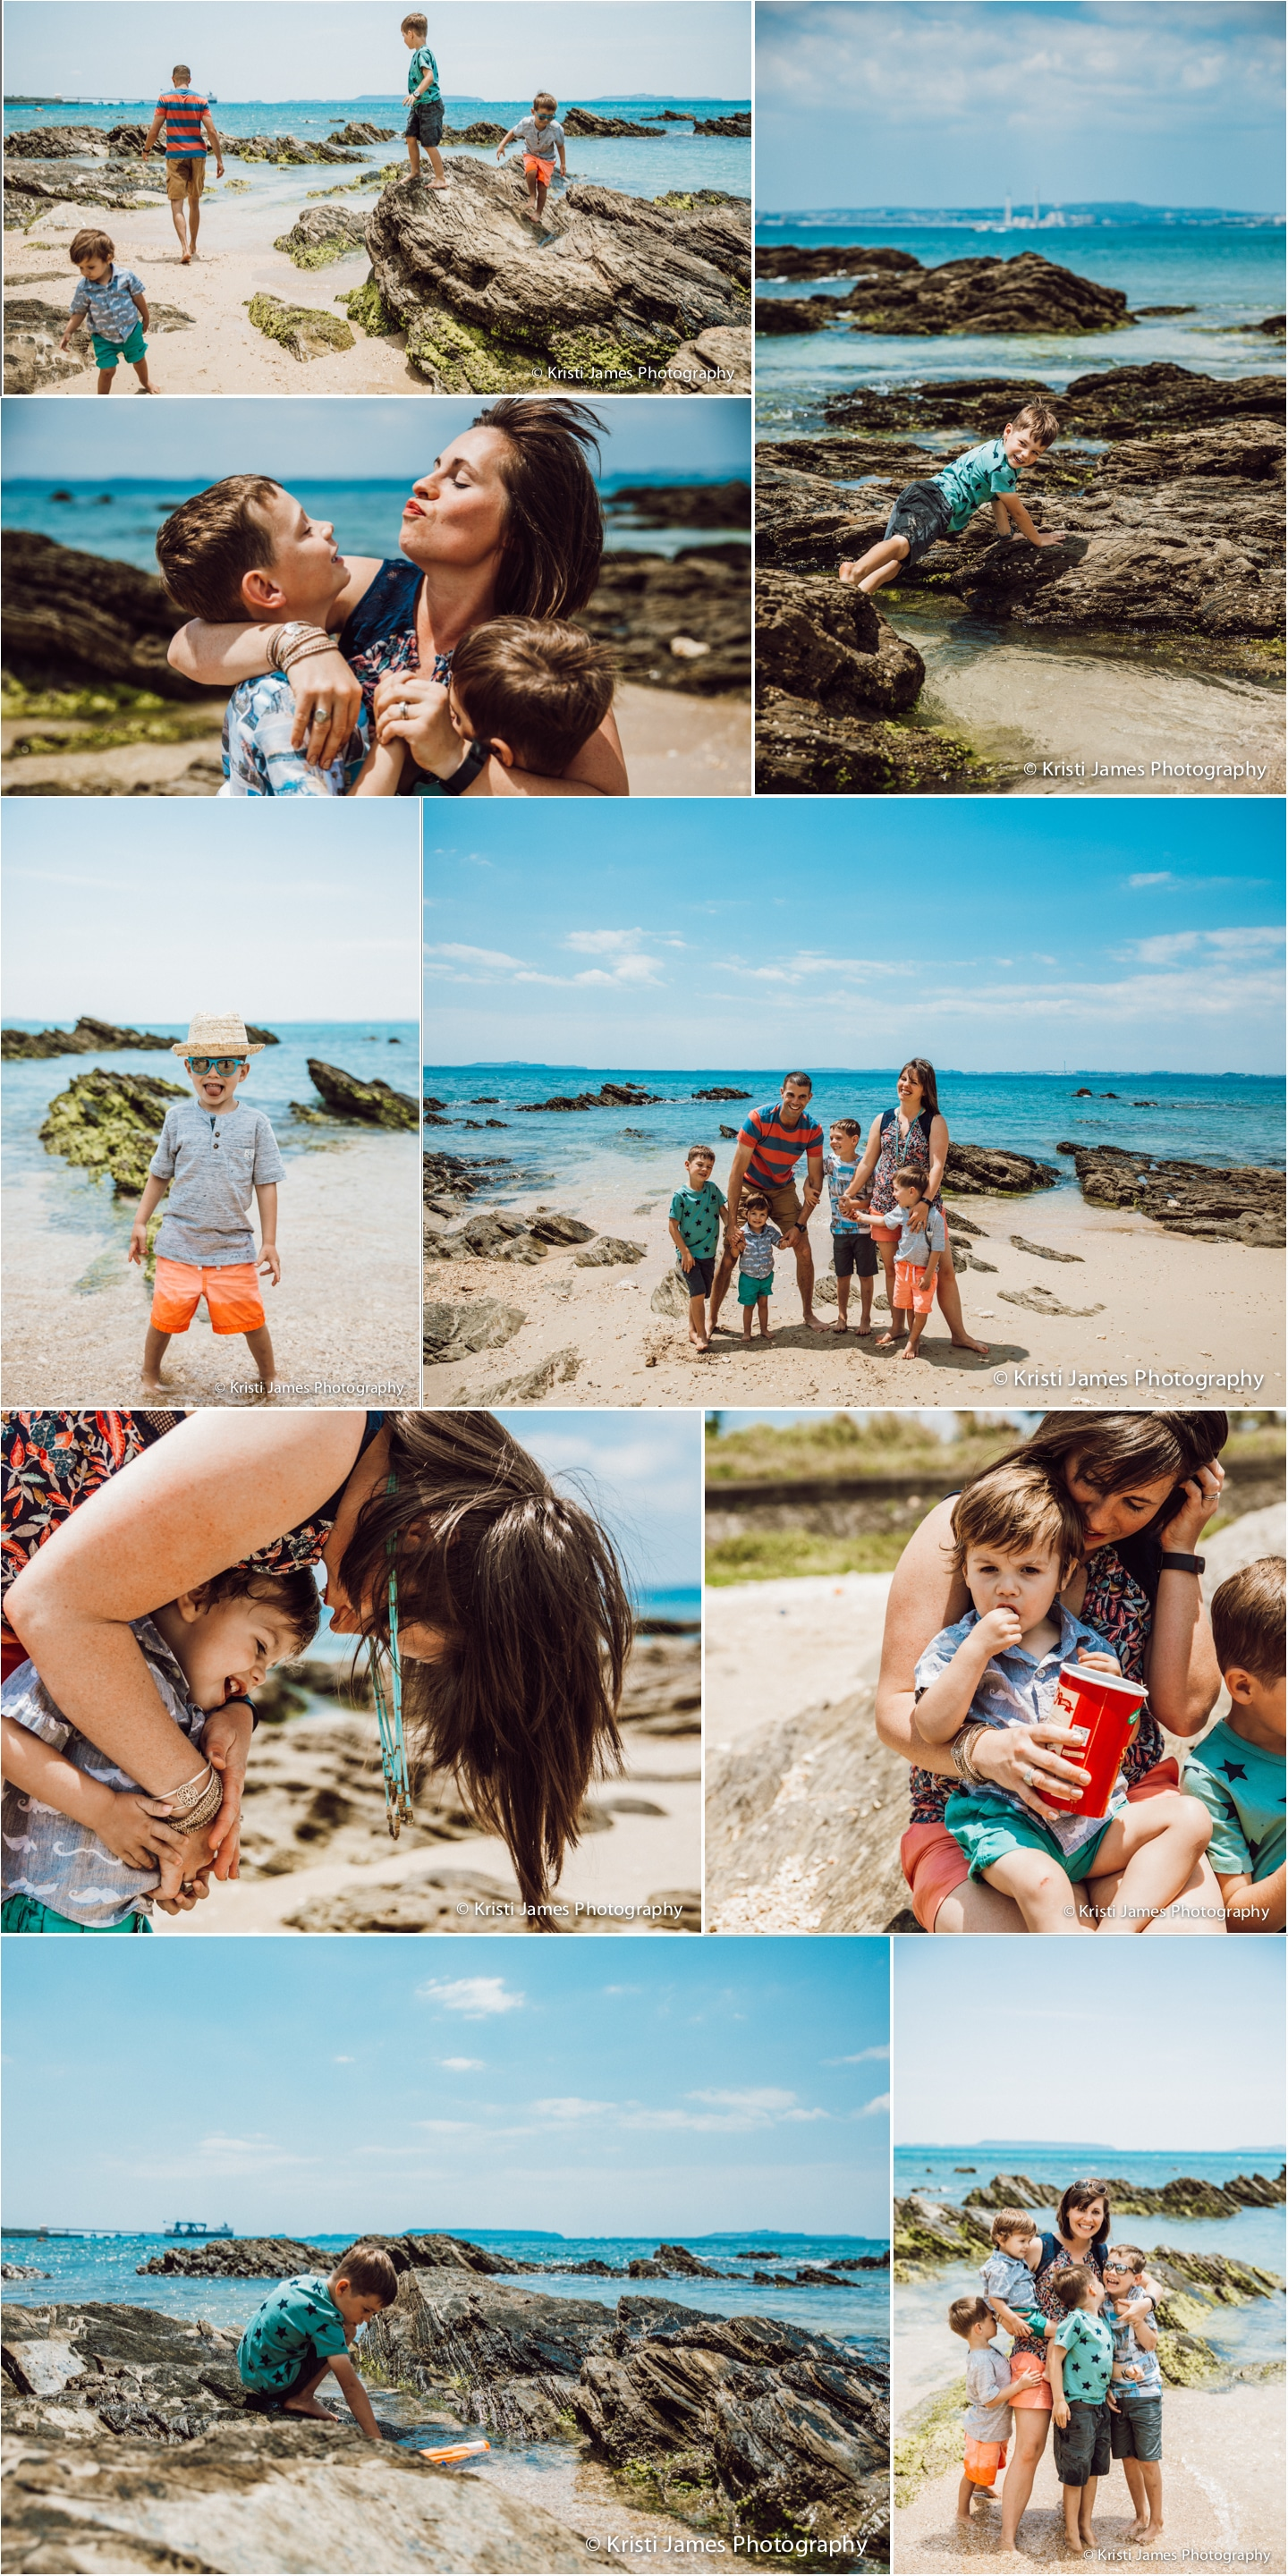 Alison Bell, Kin, beach, blue water, family, child, kid photography, kin town